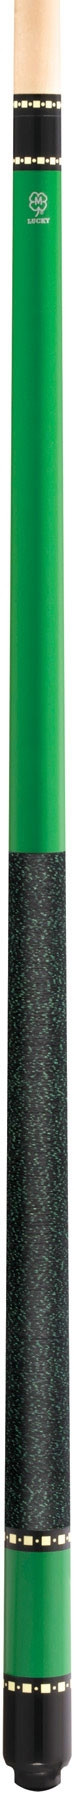 McDermott Lucky Pool Cue, L72, Green